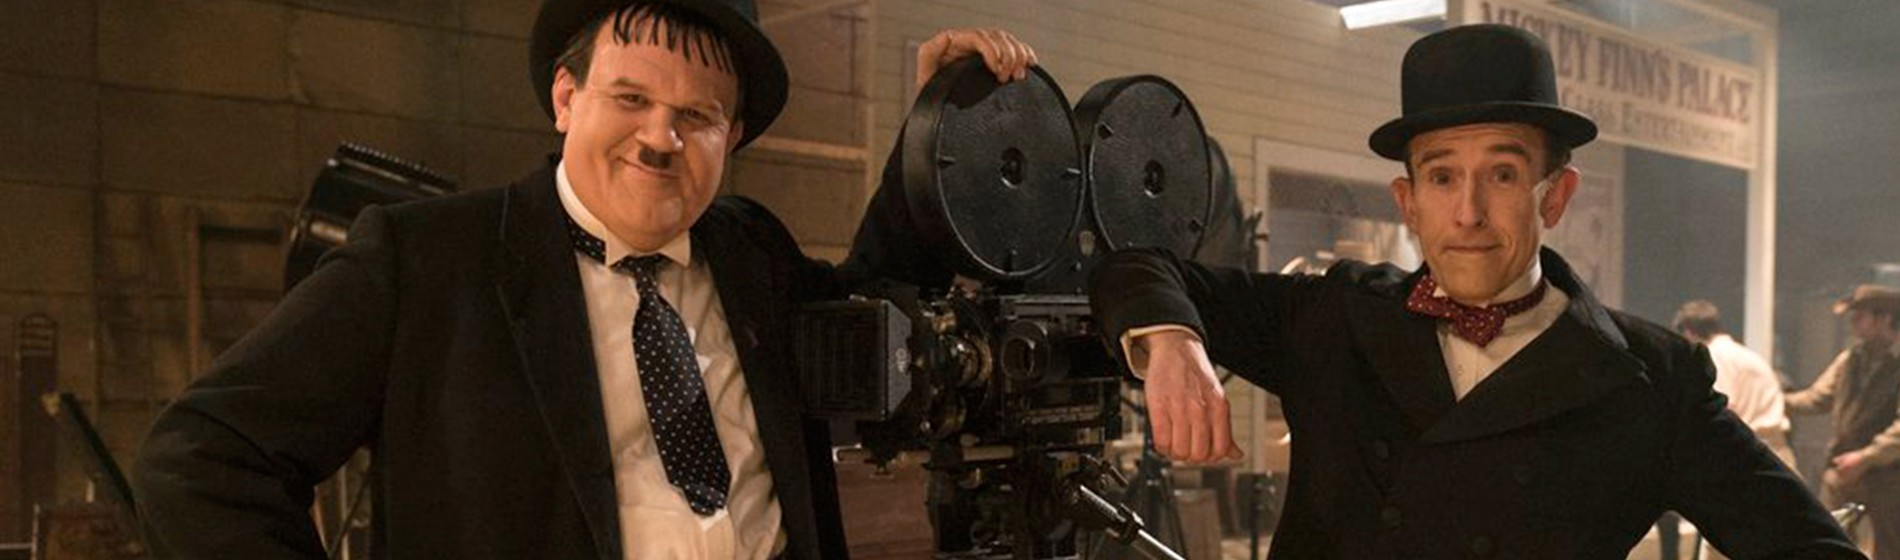 Stan and Ollie Review